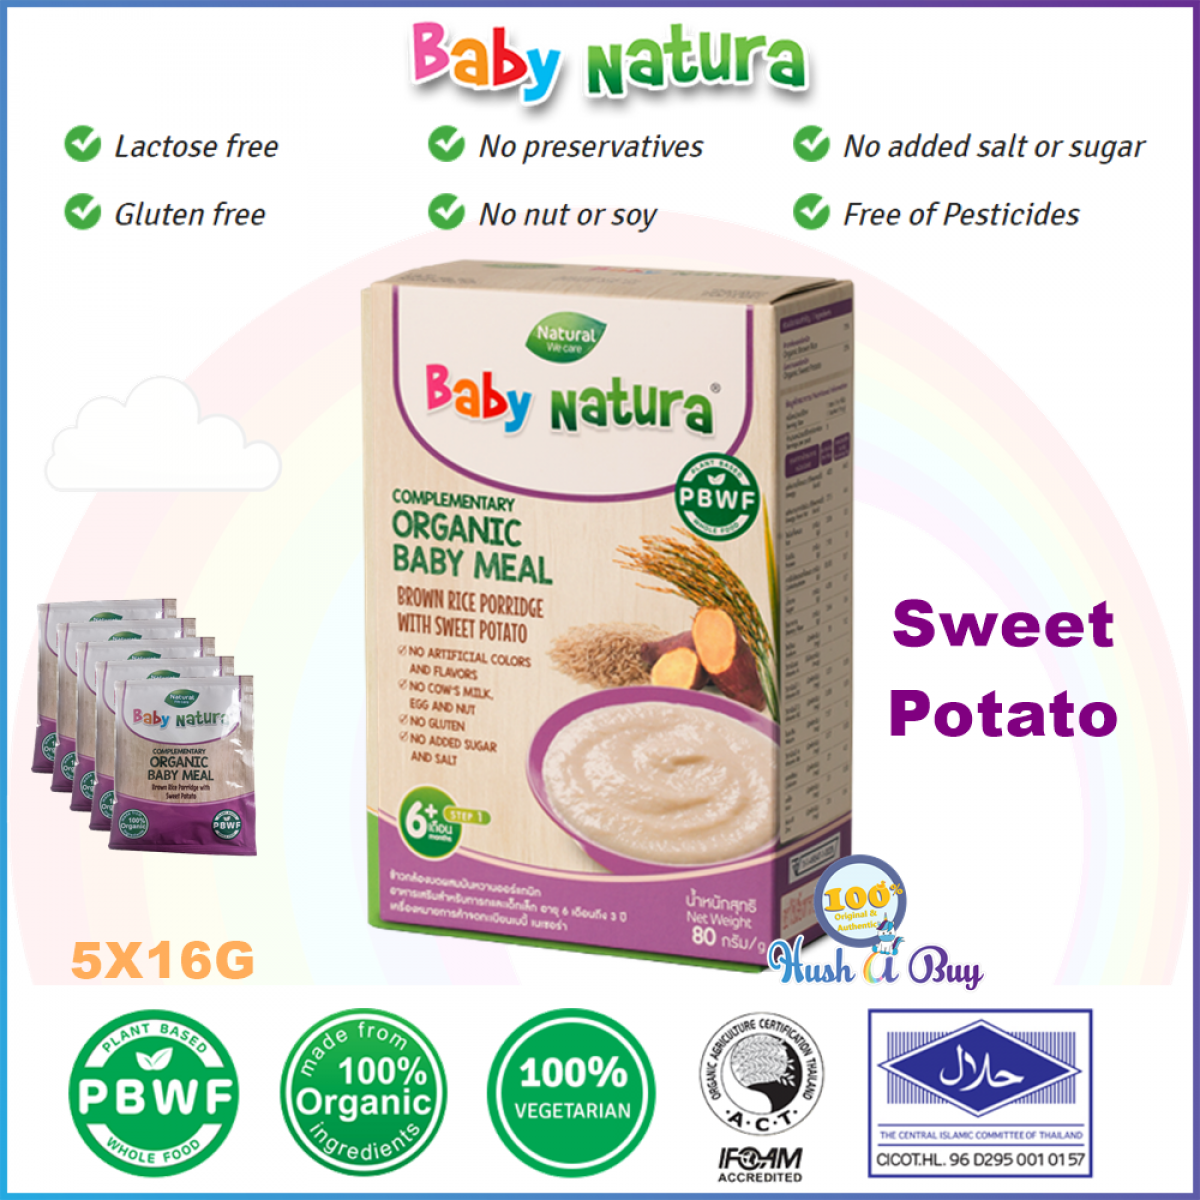 Baby Natura Brown Rice Porridge Sweet Potato  Pumpkin Morning Glory Quinoa - 5 Sachet - Best for Travel - Halal